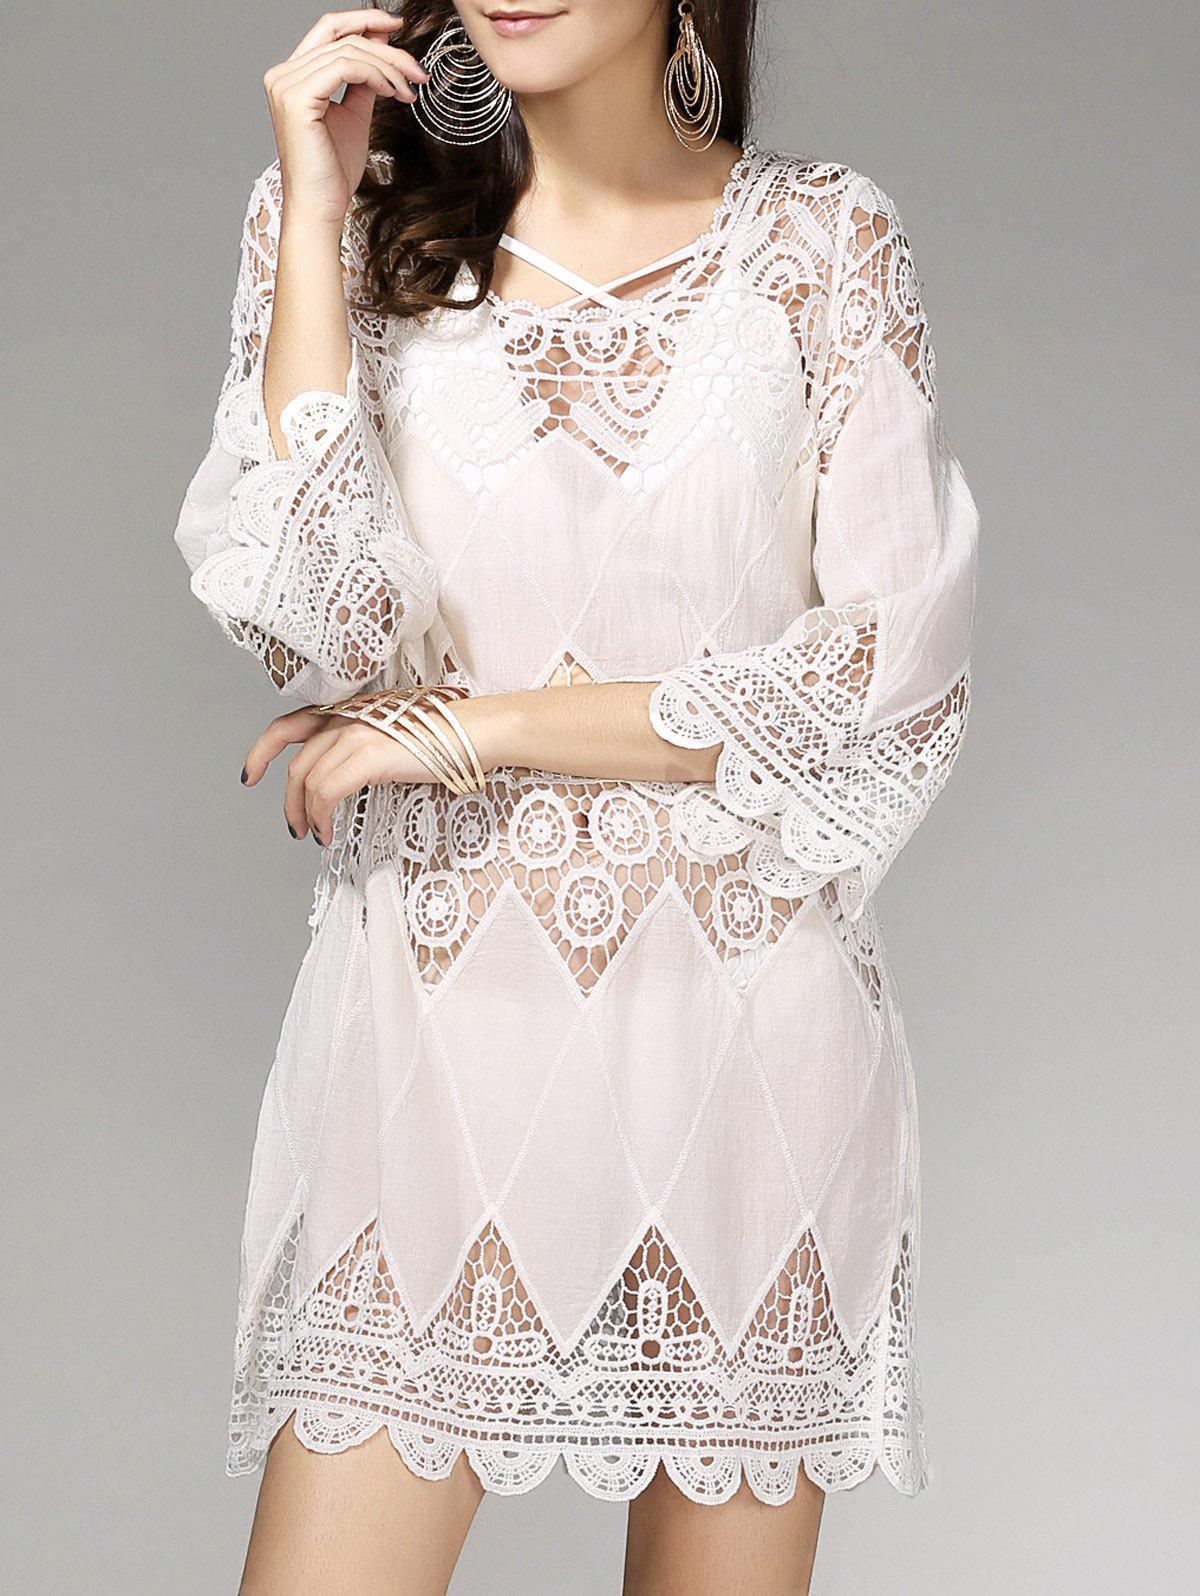 Stylish Women's 3/4 Sleeve Hollow Out Criss-Cross Cover Up Dress - OFF WHITE ONE SIZE(FIT SIZE XS TO M)